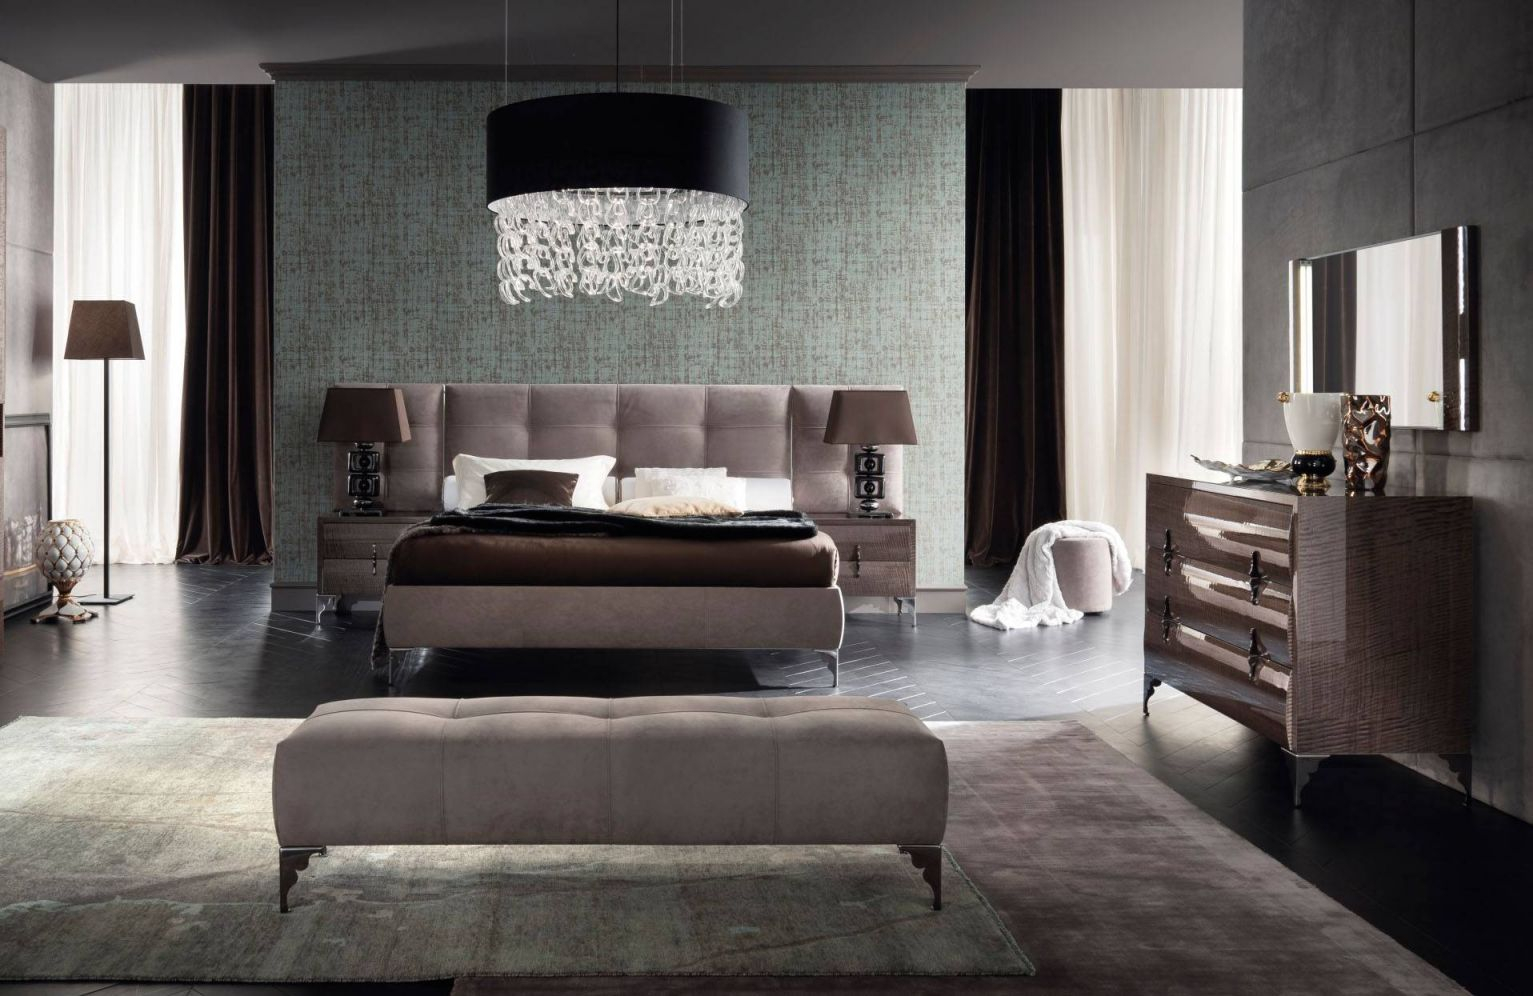 Made In Italy Leather Contemporary Master Bedroom Designs Las Vegas inside Elegant Contemporary Bedroom Sets